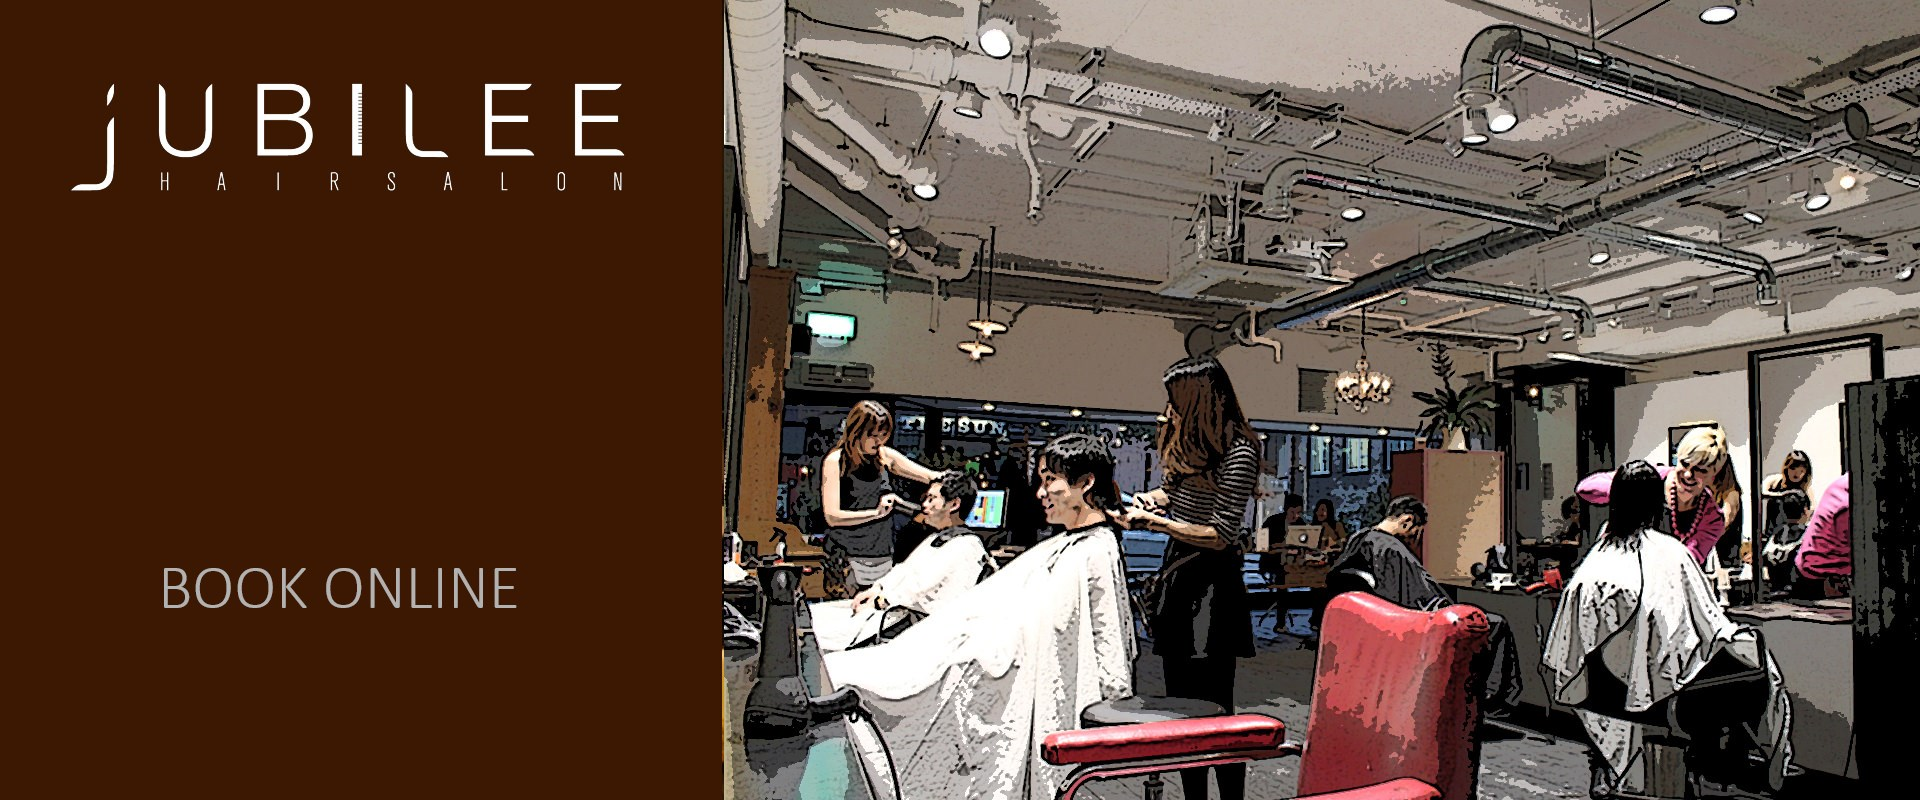 Jubilee Hair Salon - New shop in Covent Garden